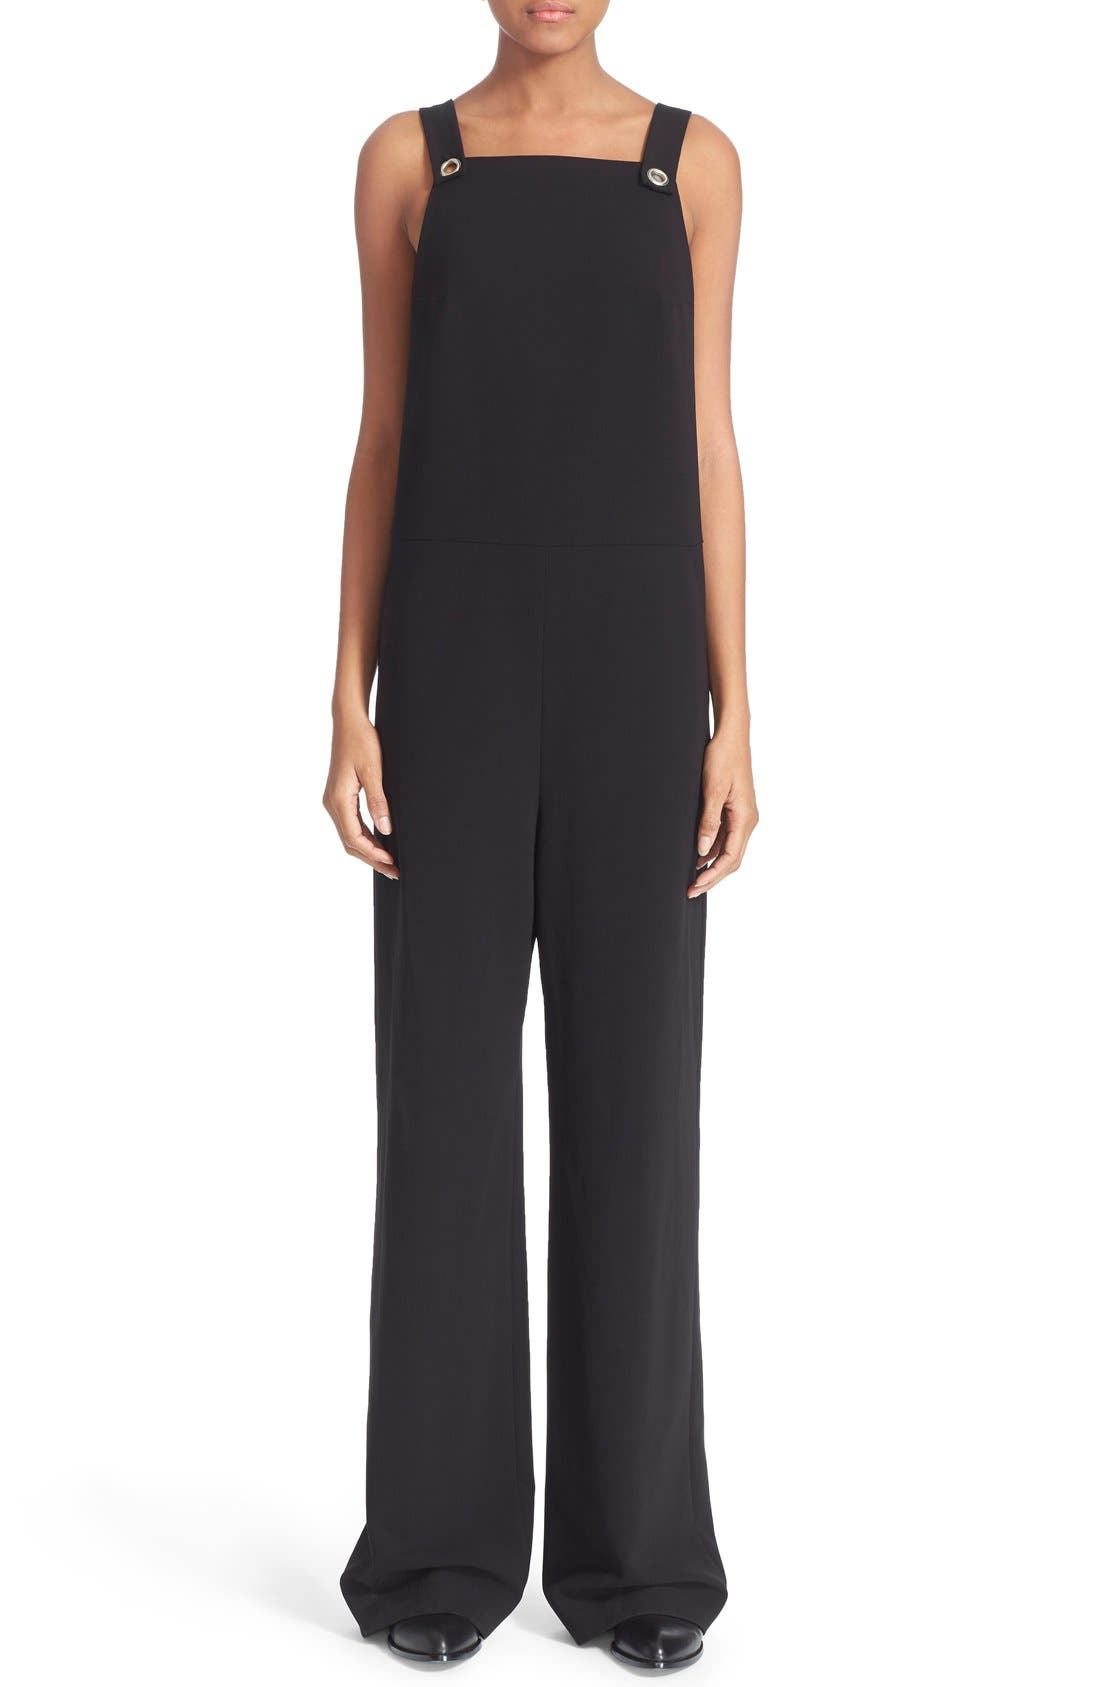 Alternate Image 1 Selected - T by Alexander Wang Twill Jumpsuit with Strap Detail